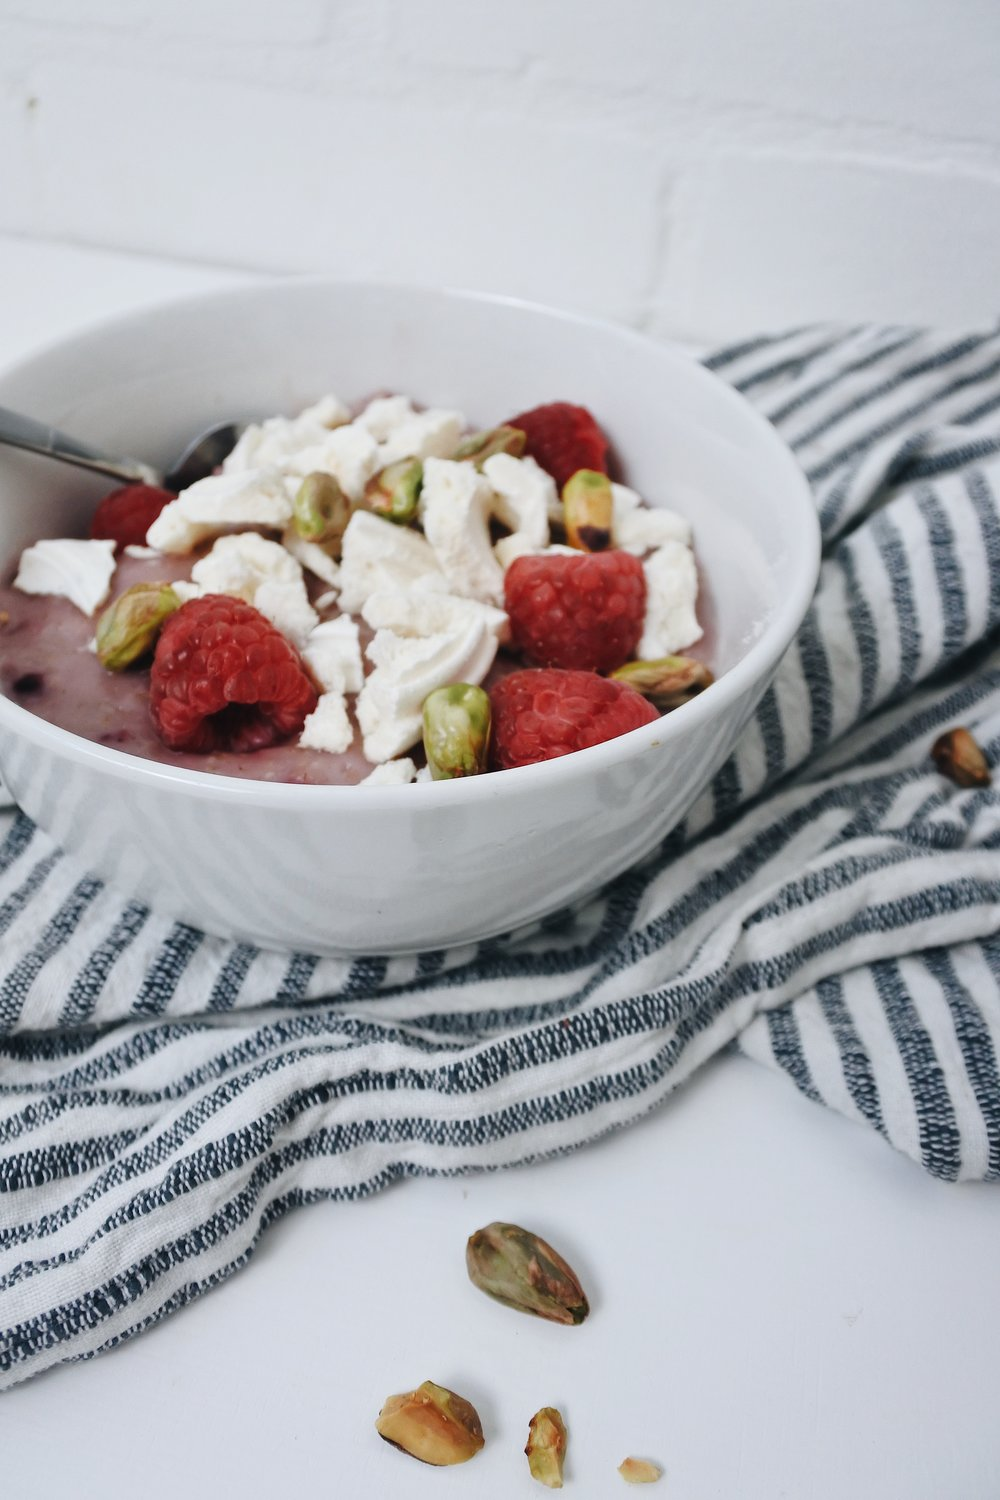 STRAWBERRY SHORTCAKE OATS